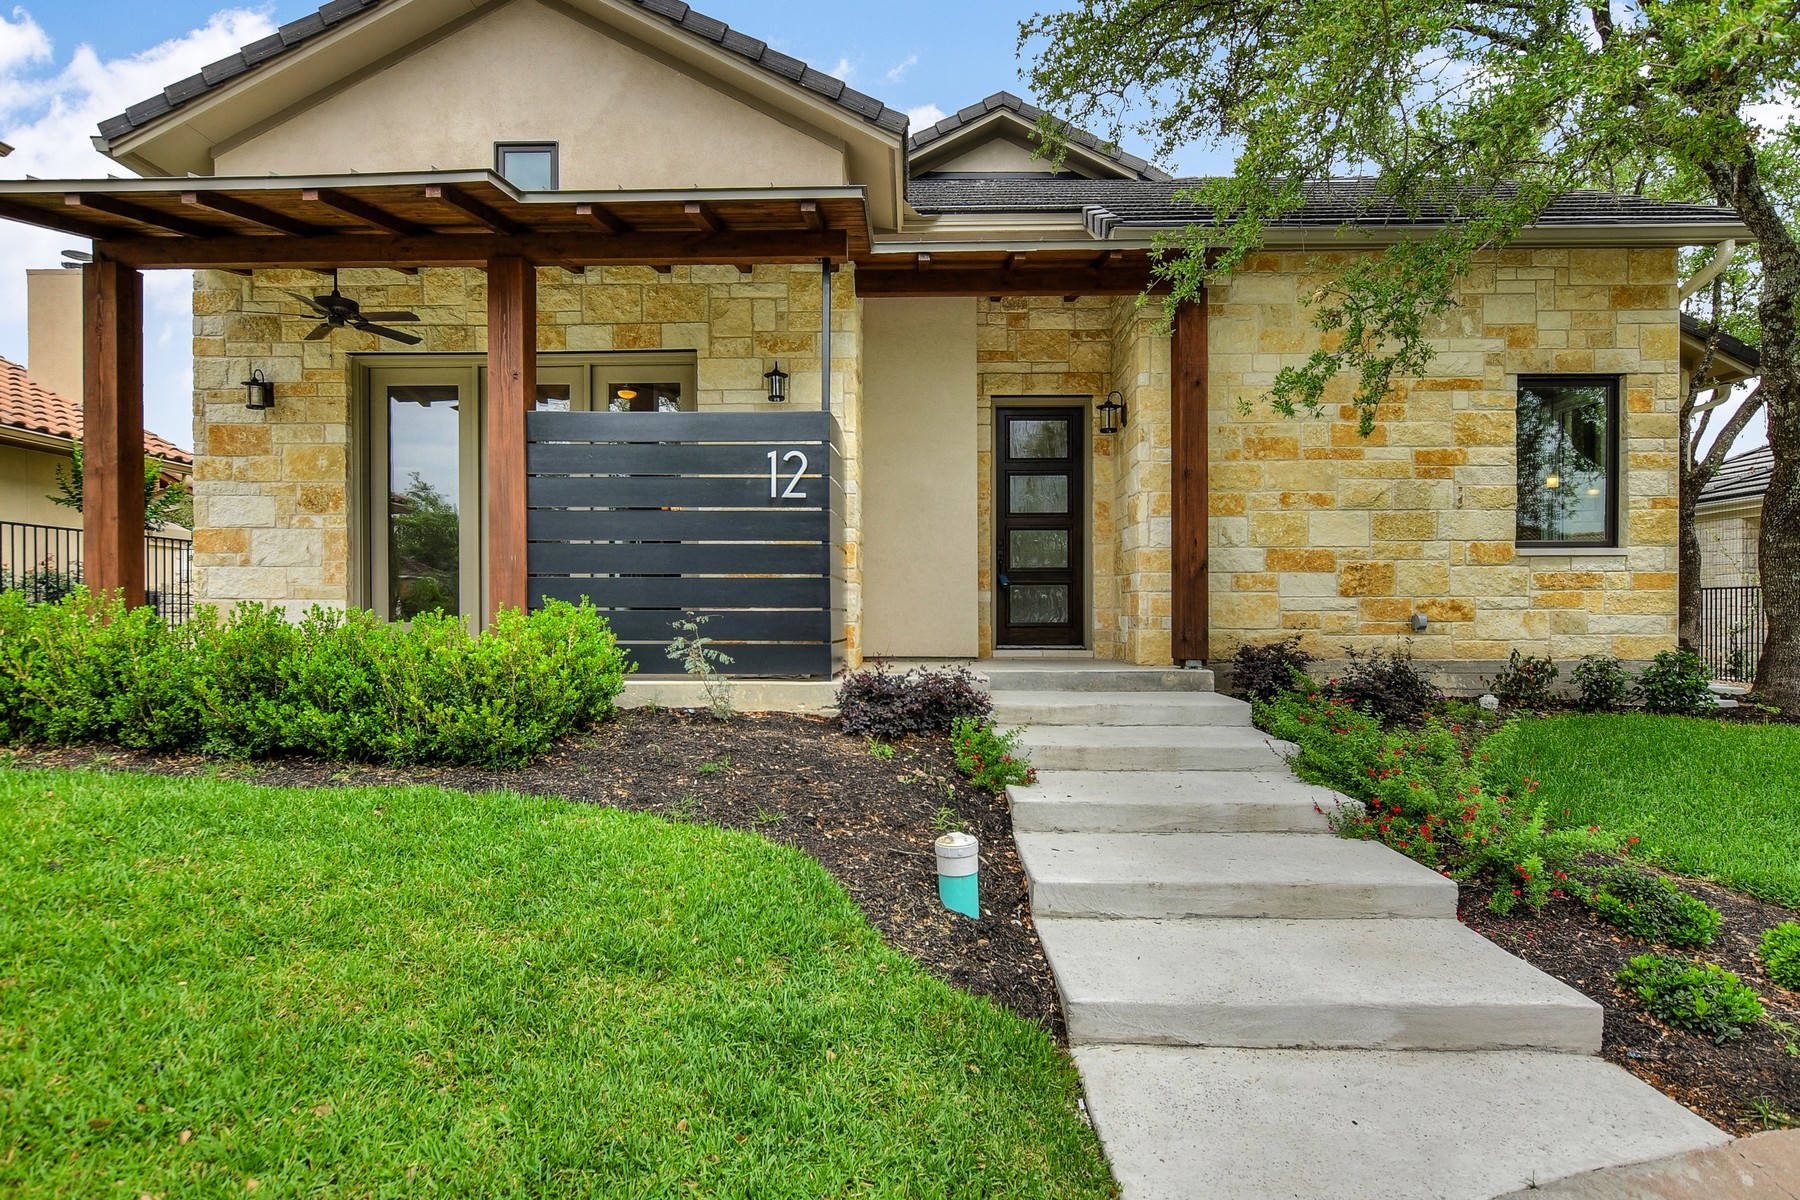 Single Family Home for Sale at Architect Designed in the Hills of Lakeway 12 Tourney Ln The Hills, Texas 78738 United States